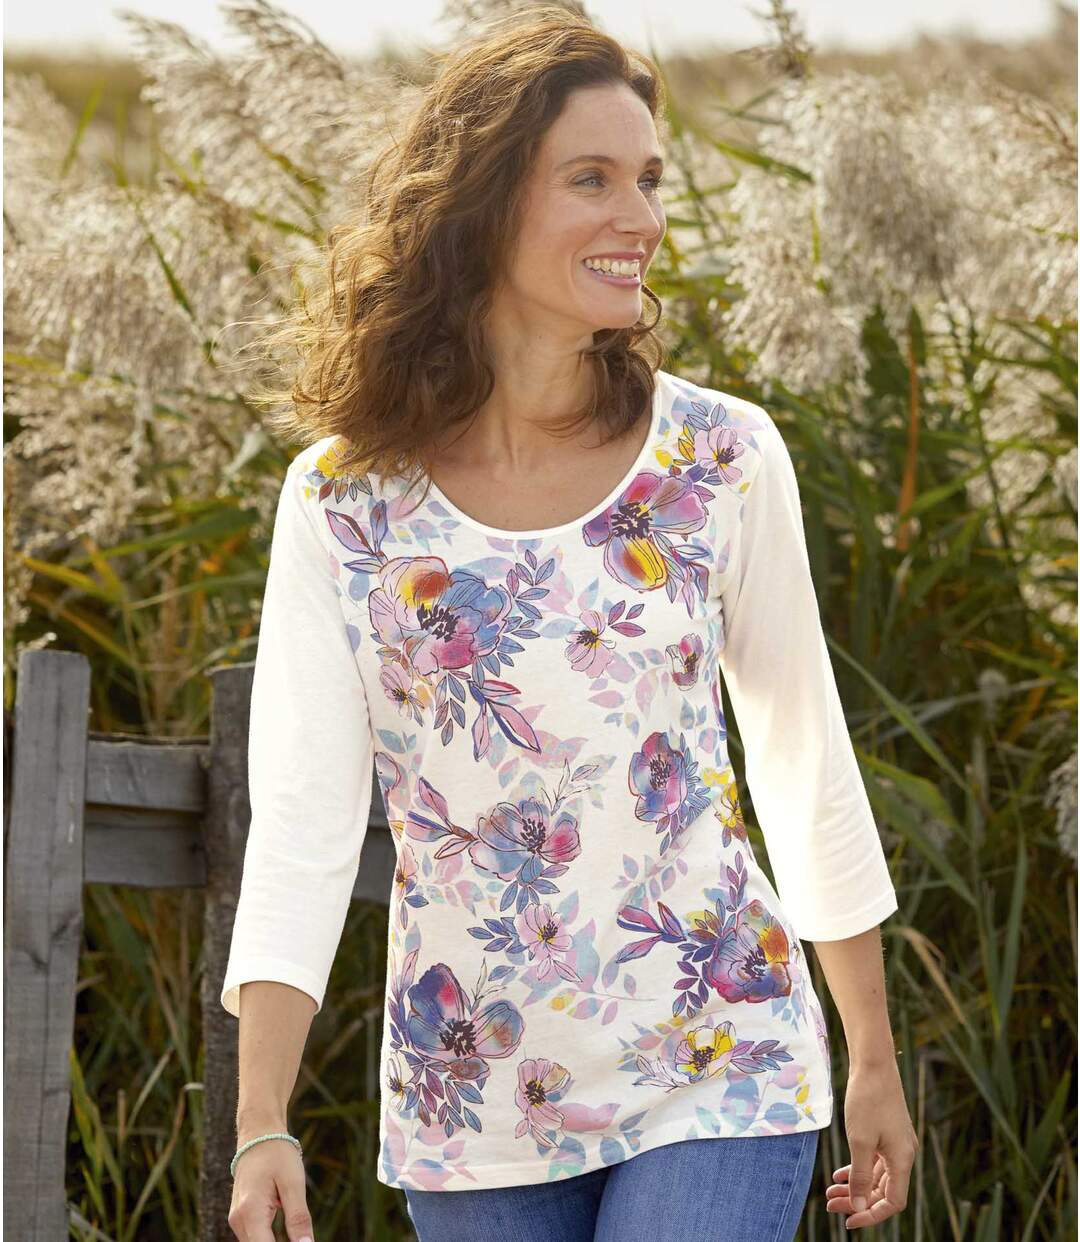 Women's Floral Watercolour T-shirt with Three-Quarter Sleeves